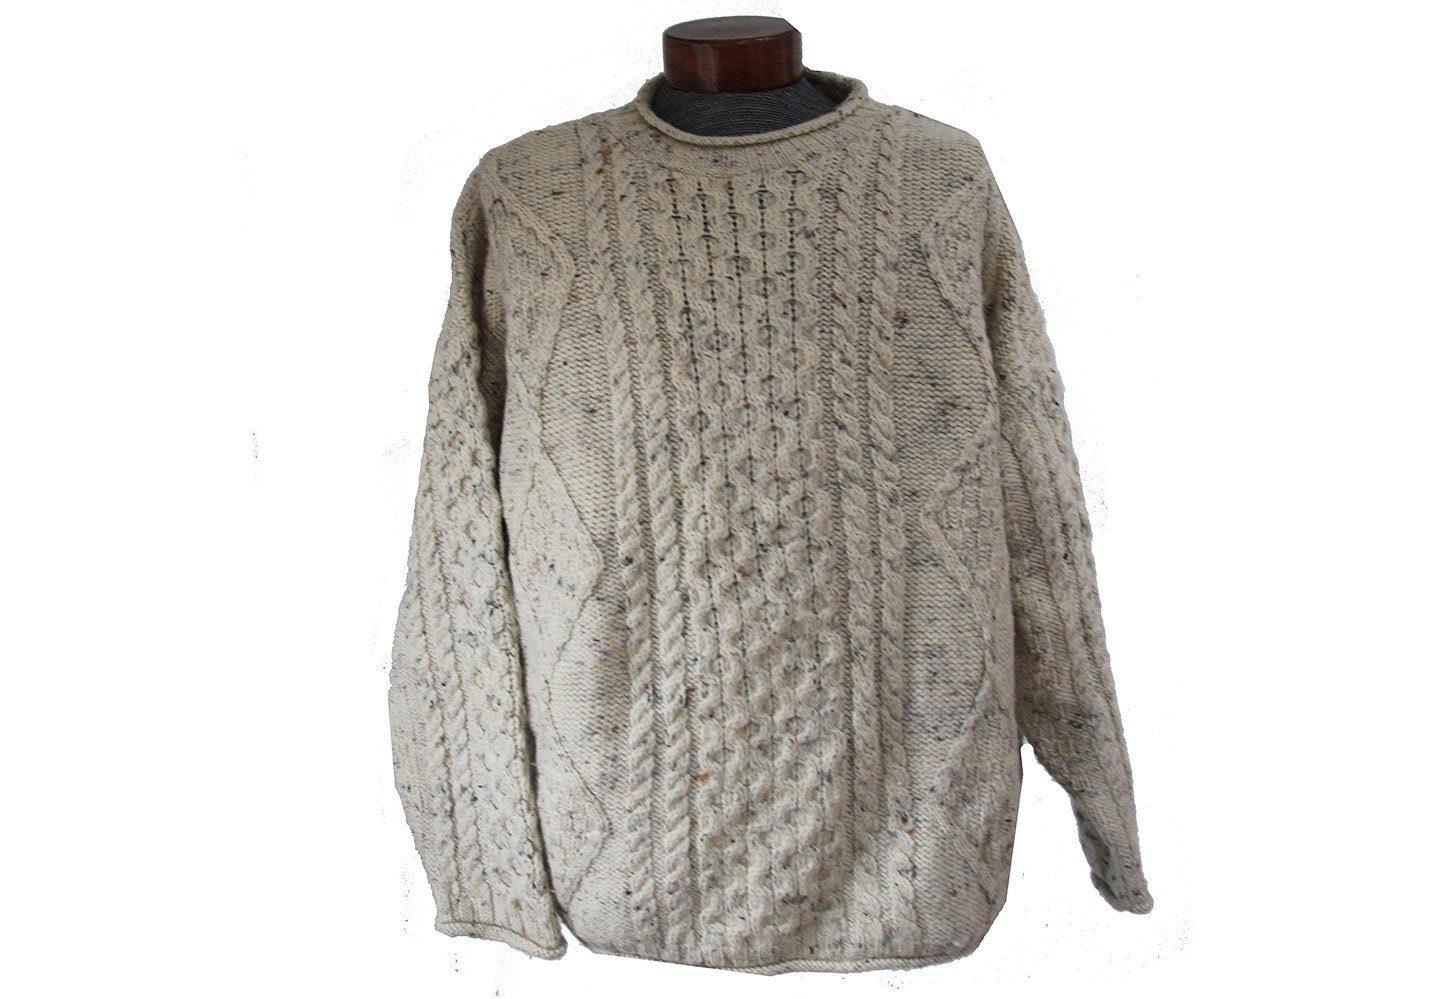 Oatmeal cable knit fisherman sweater wool ireland inis crafts for Inis crafts ireland sweater